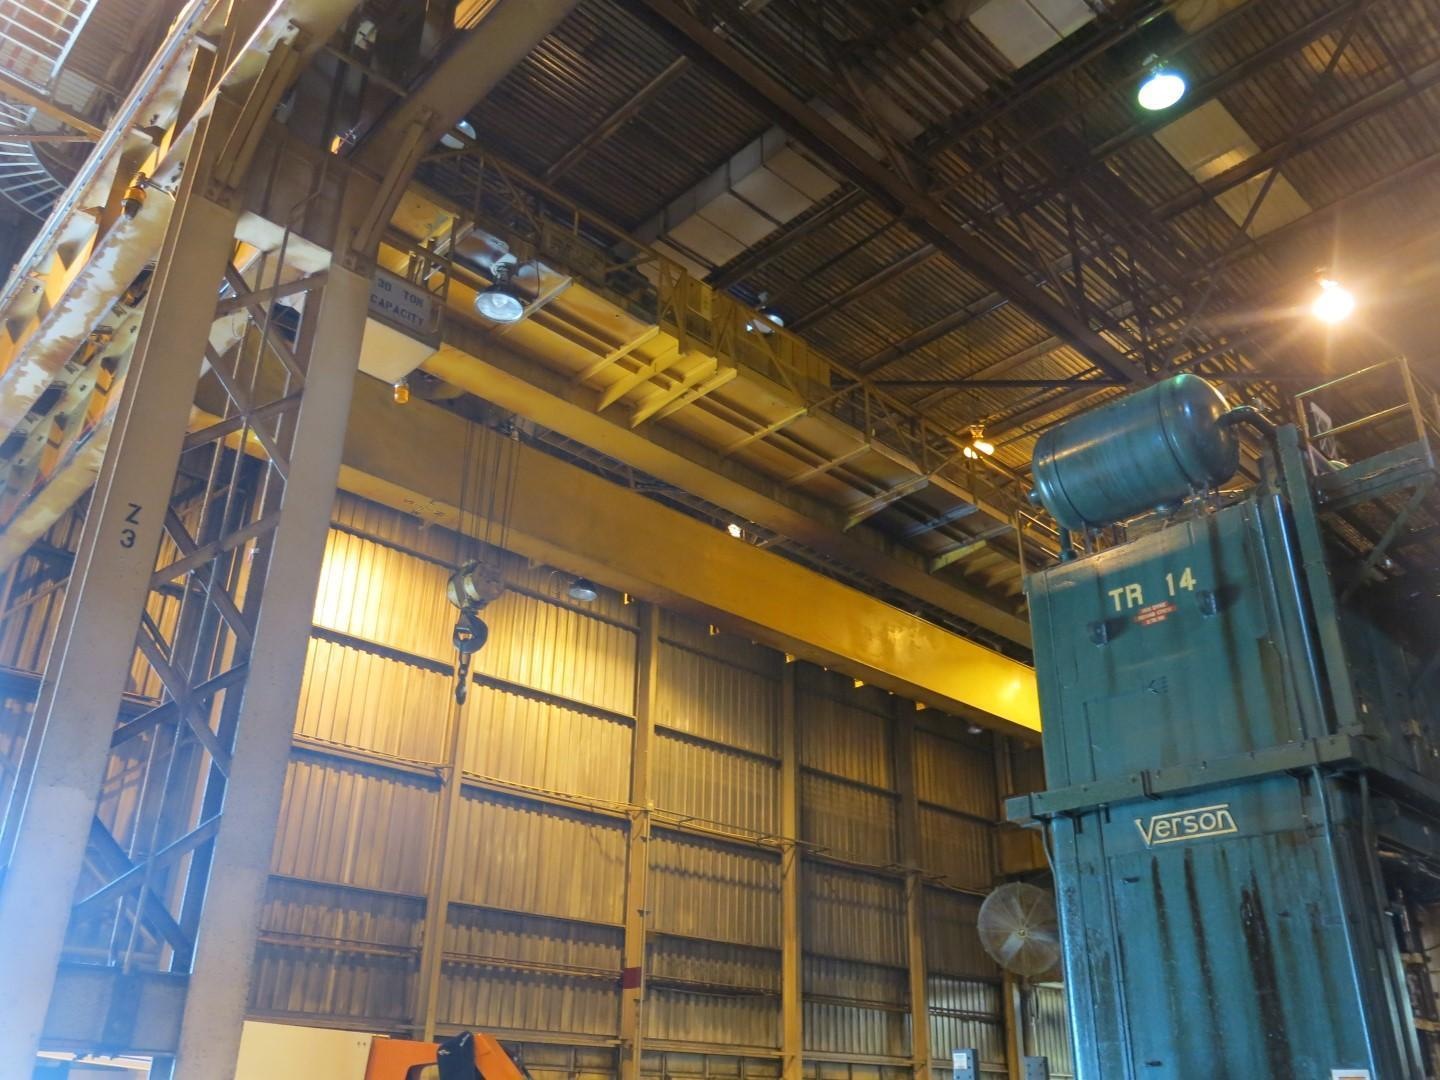 "30 Ton x 48' 1"" P&H Double Grinder Overhead Bridge Crane"